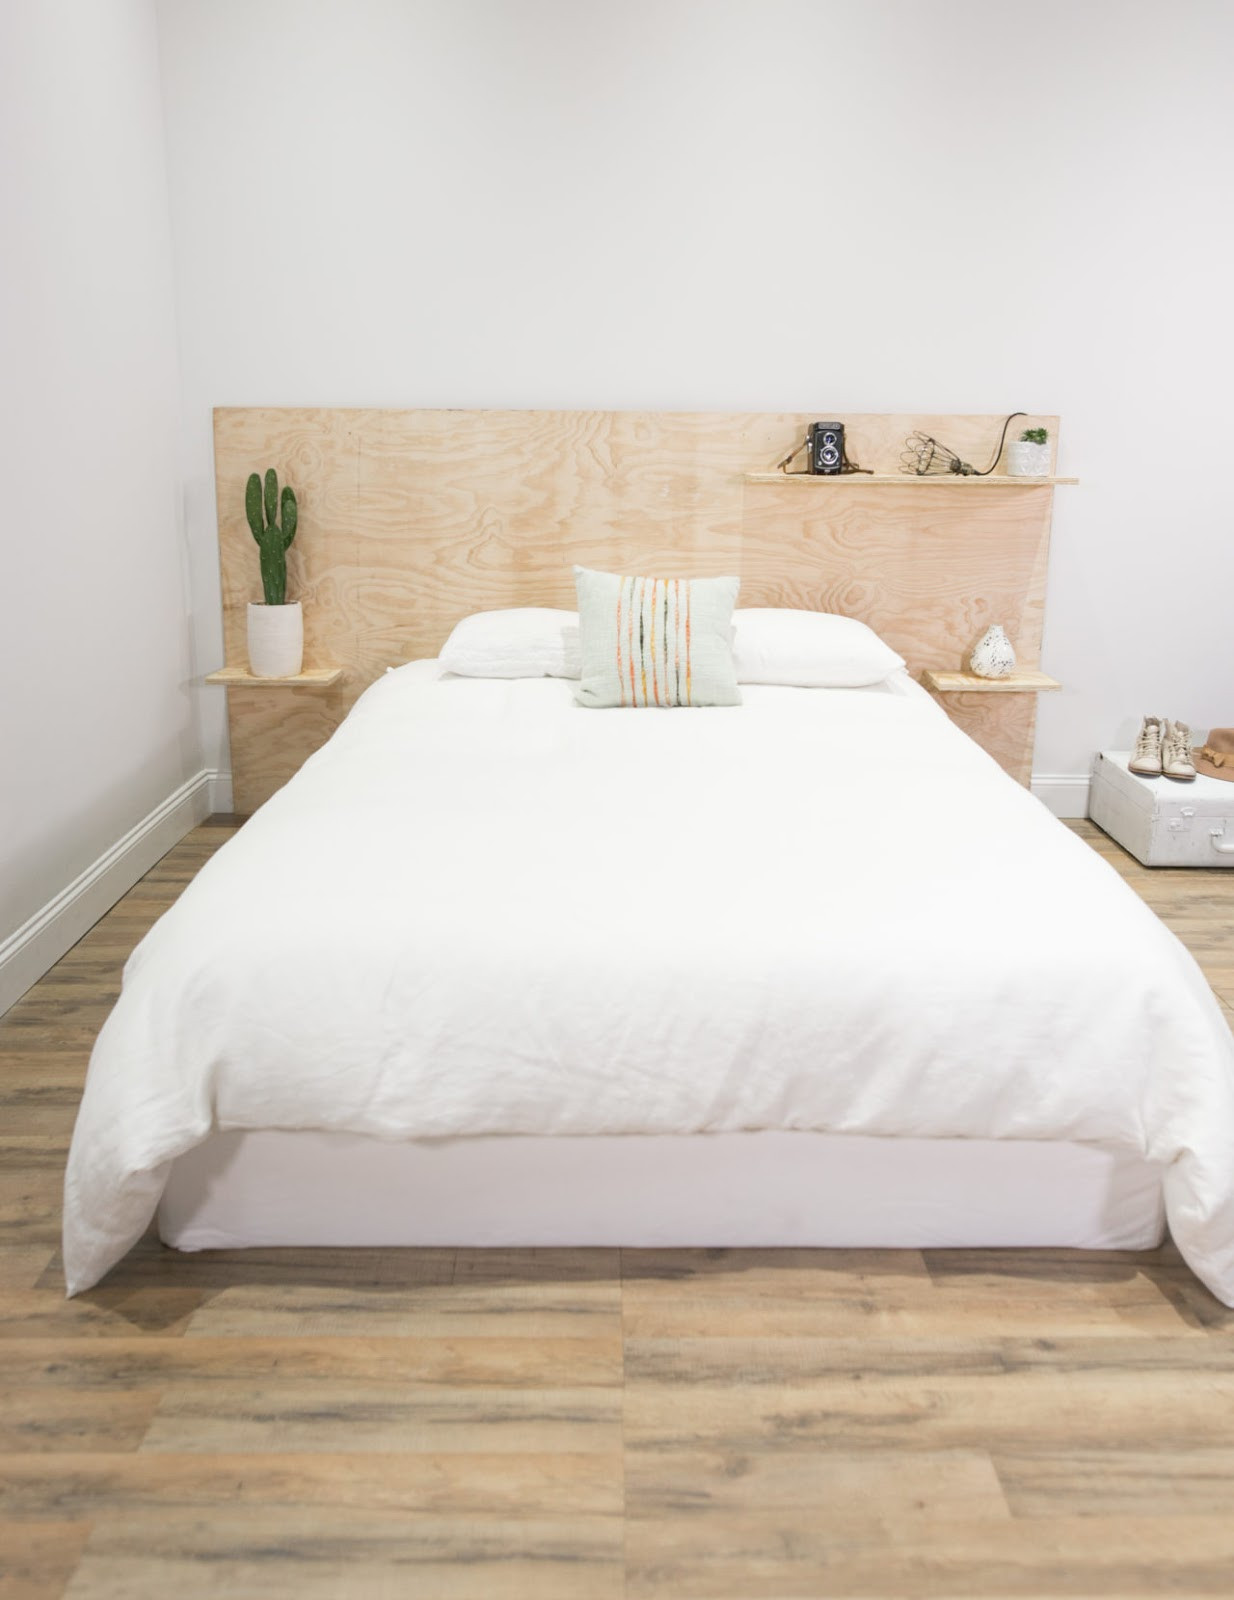 Best ideas about DIY Bed Headboards . Save or Pin 8 Plywood Headboard Bed DIY Ideas Now.